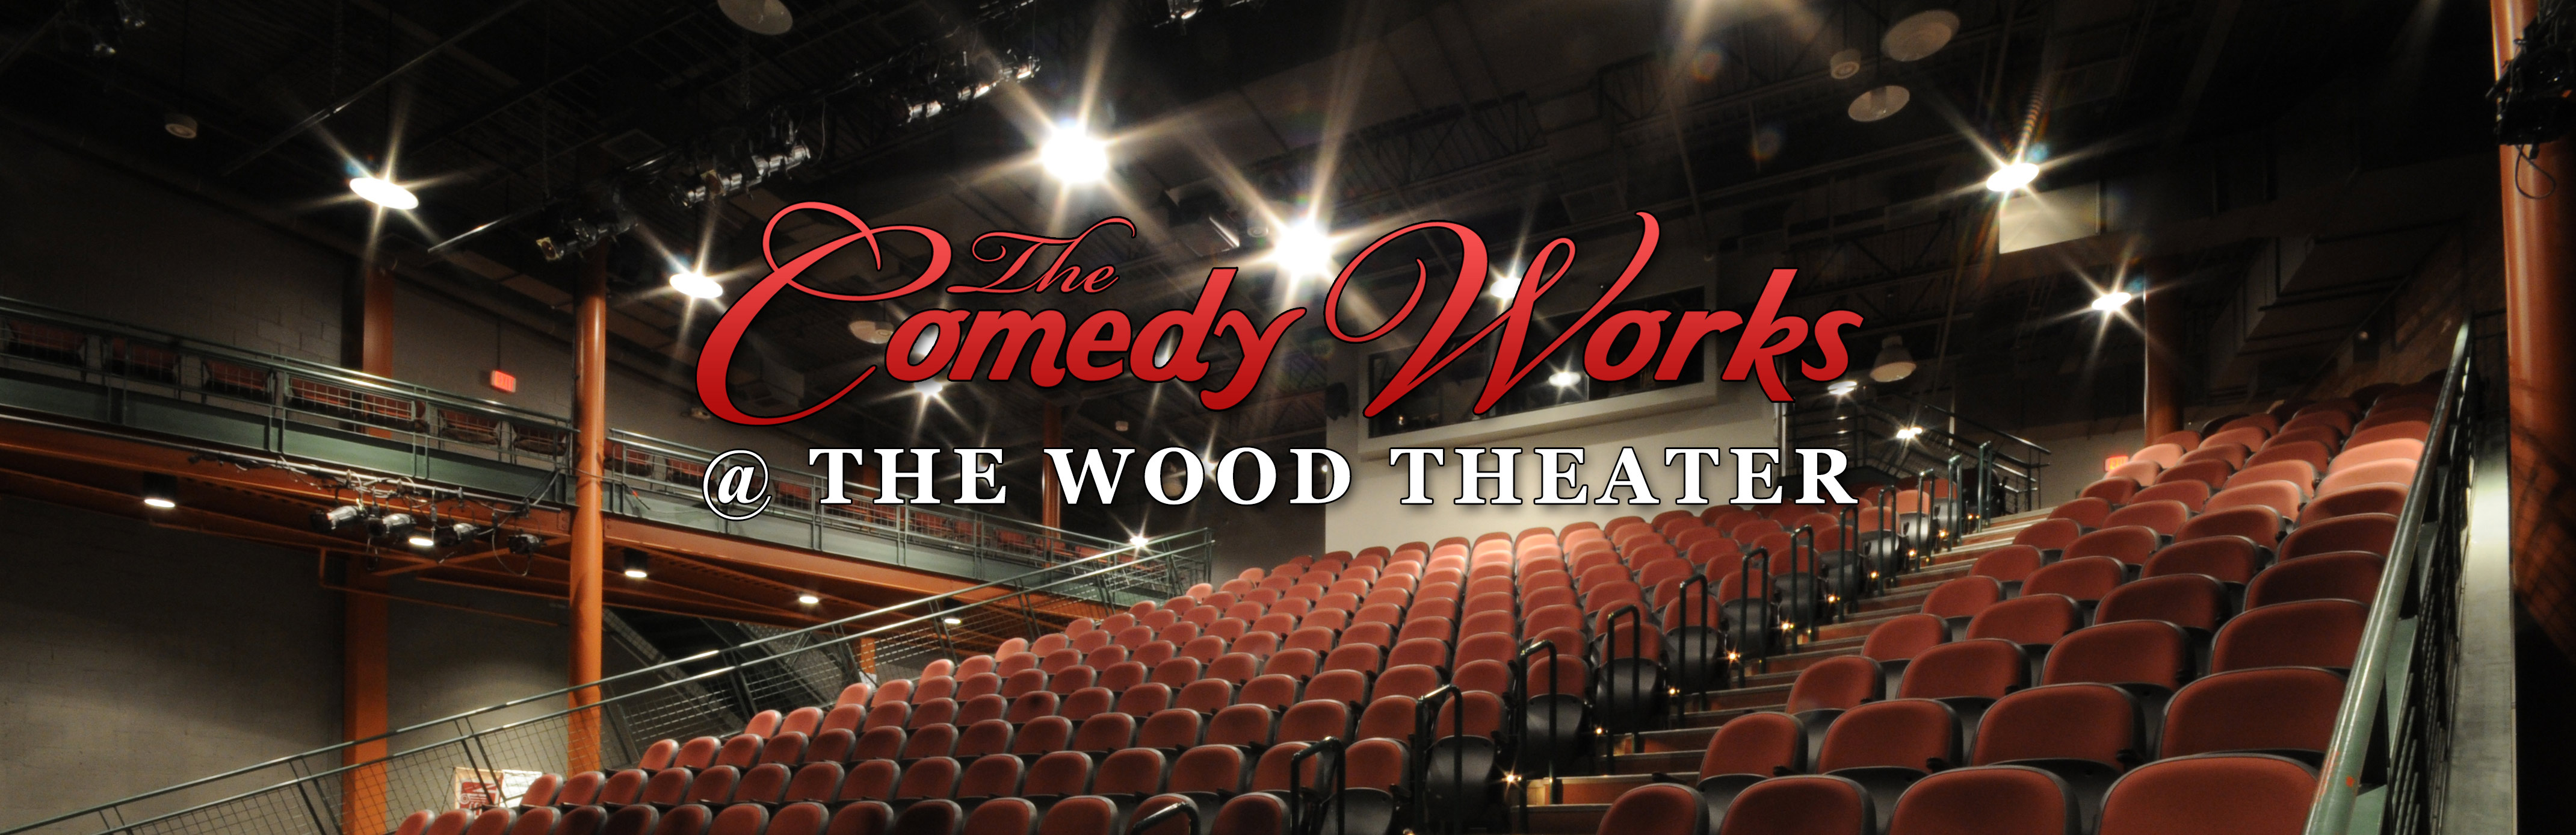 TheComedyWorks - at WOOD THEATRE